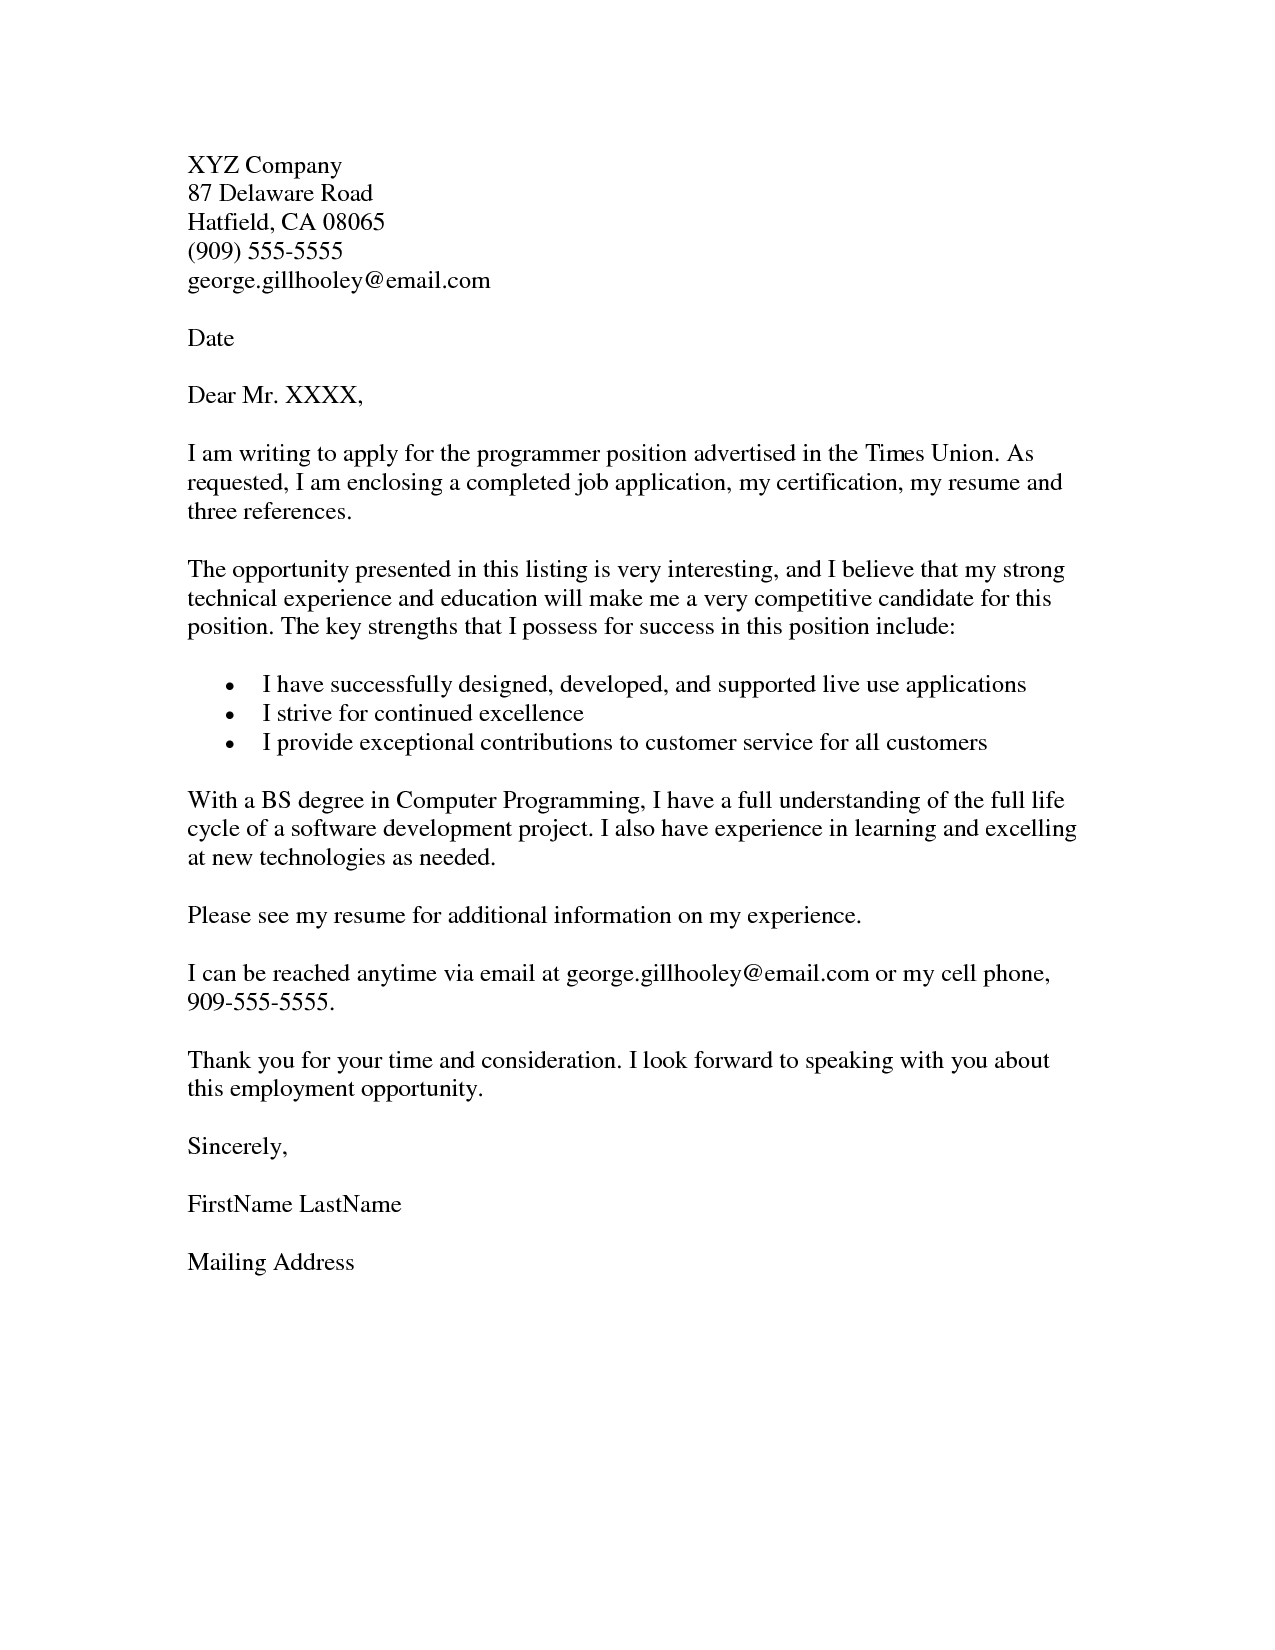 JOB APPLICATION COVER LETTER Example Resumes job